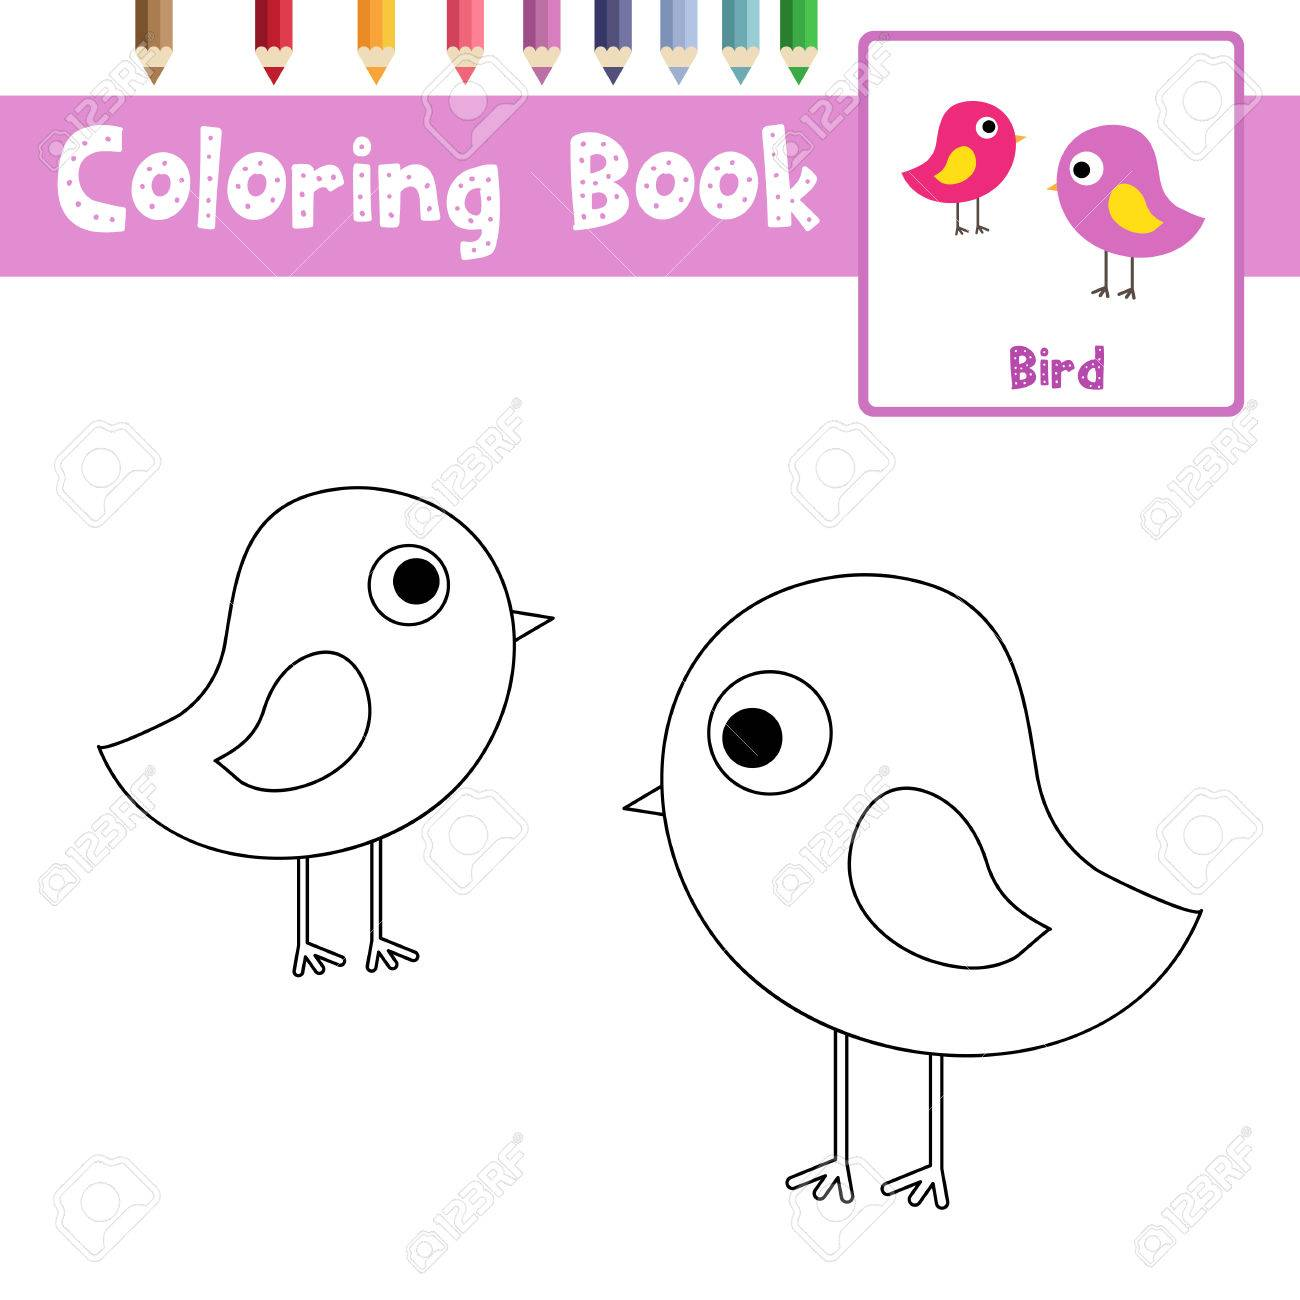 Coloring Page Of Standing Bird Animals For Preschool Kids Activity  Educational Worksheet. Vector Illustration.